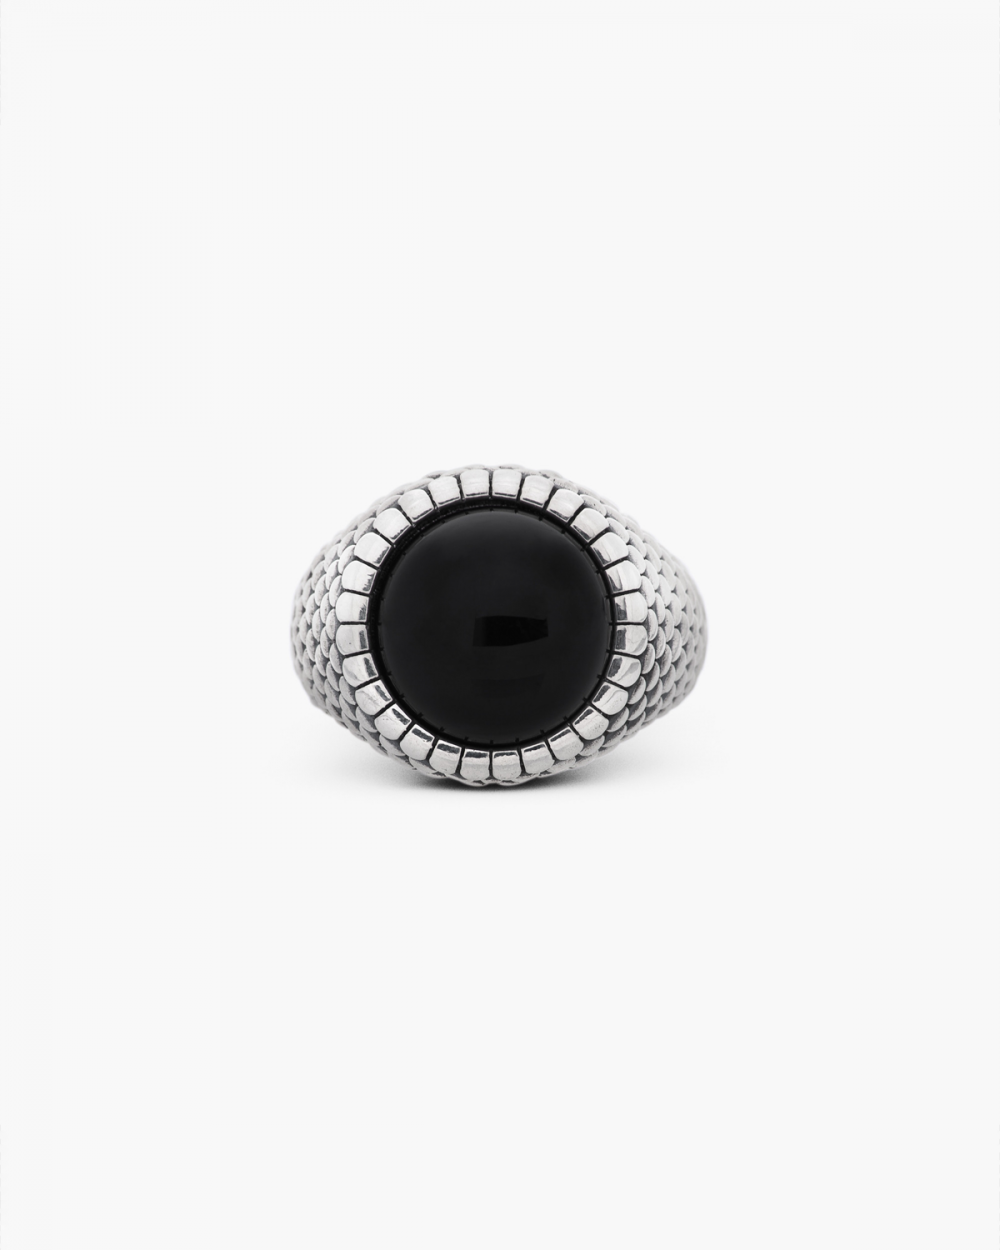 Archive Sale ARMOUR ROUND ONYX SIGNET RING NOVE25